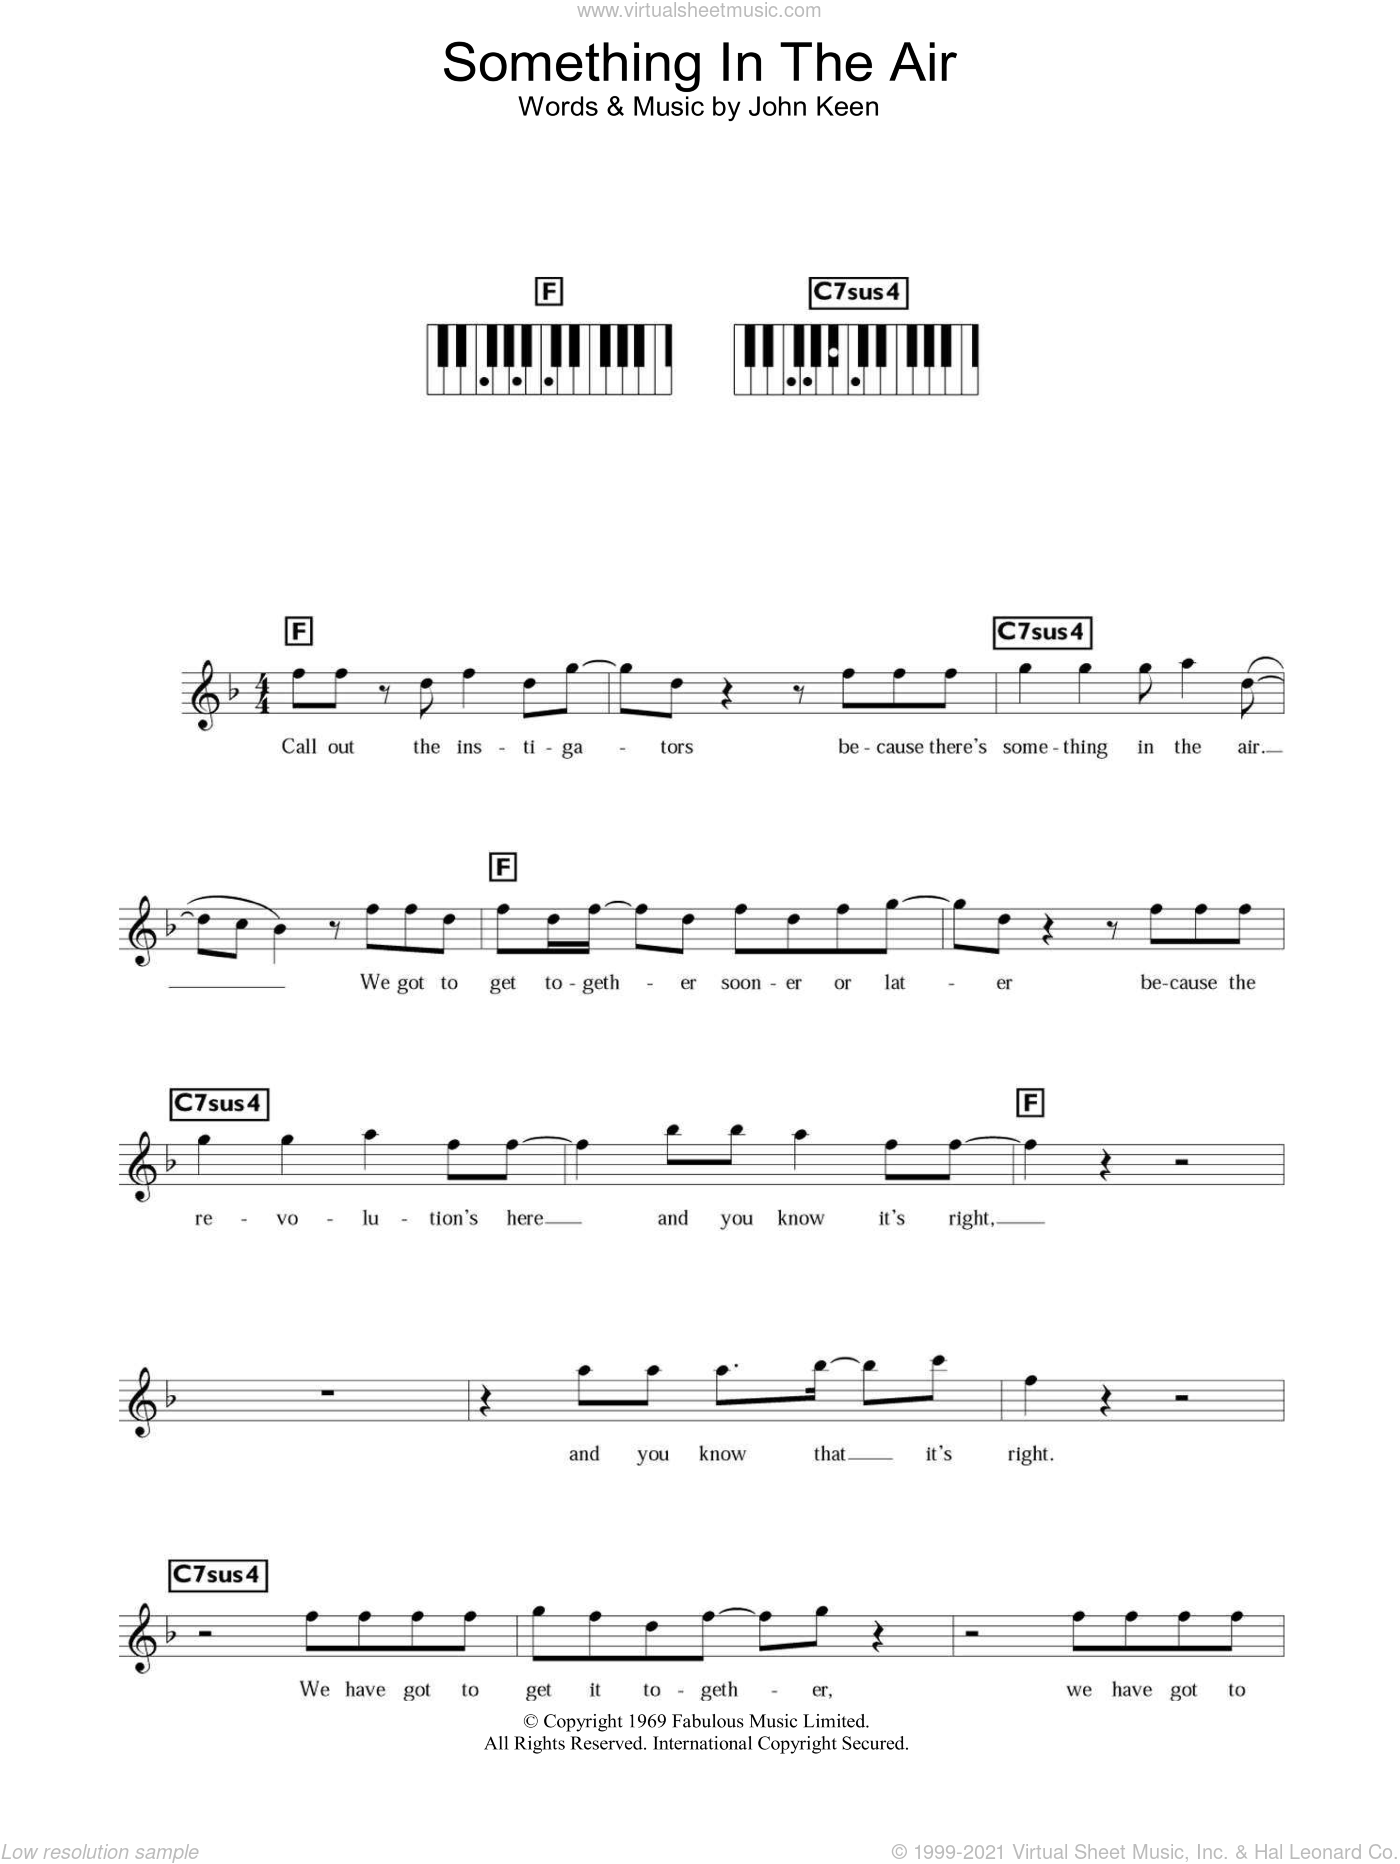 Something In The Air sheet music for piano solo (chords, lyrics, melody) by John Keen